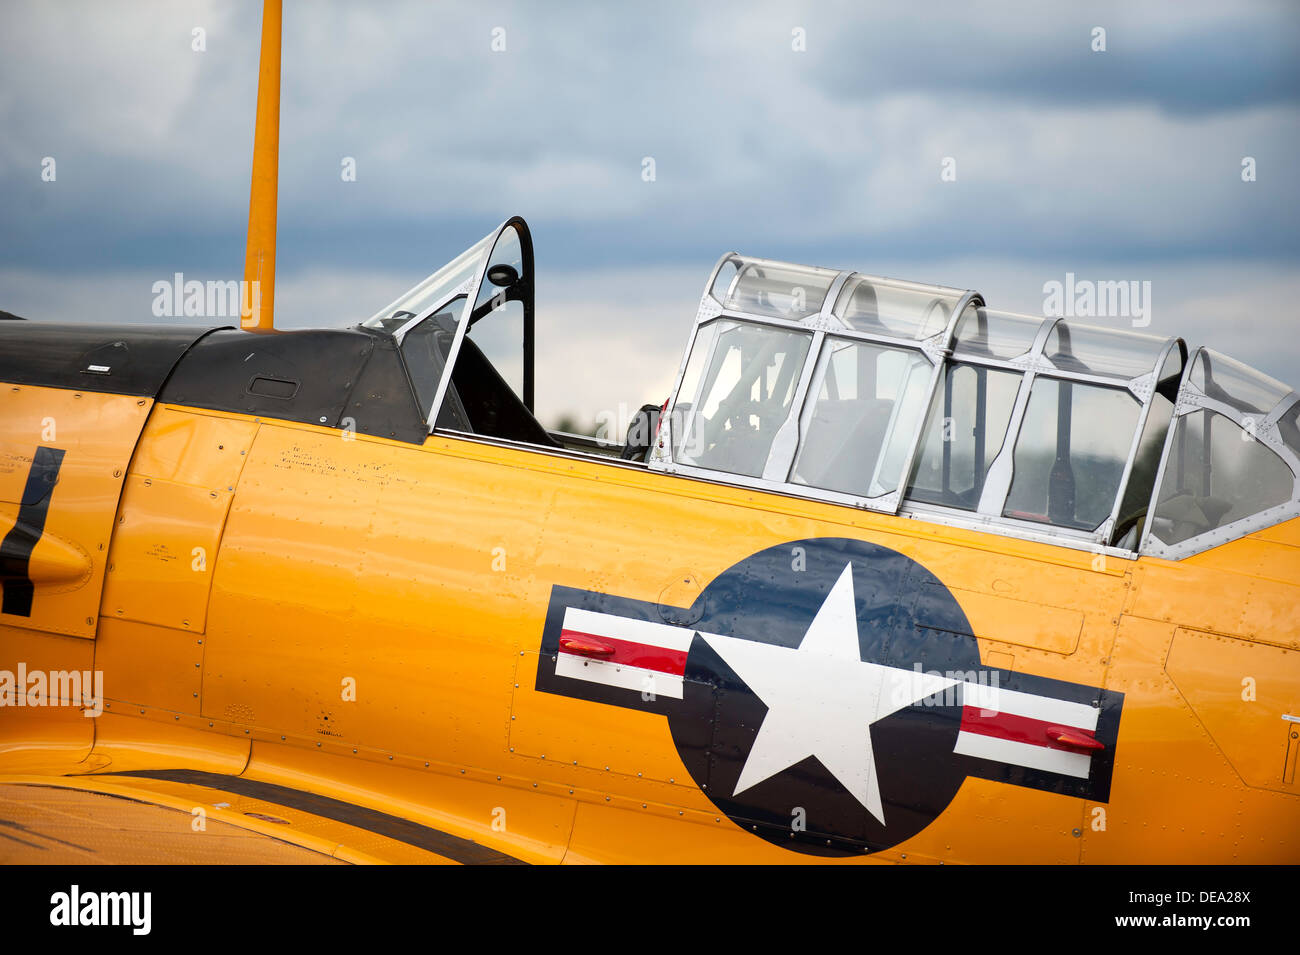 Vintage airplane cockpit with yellow fuselage - Stock Image